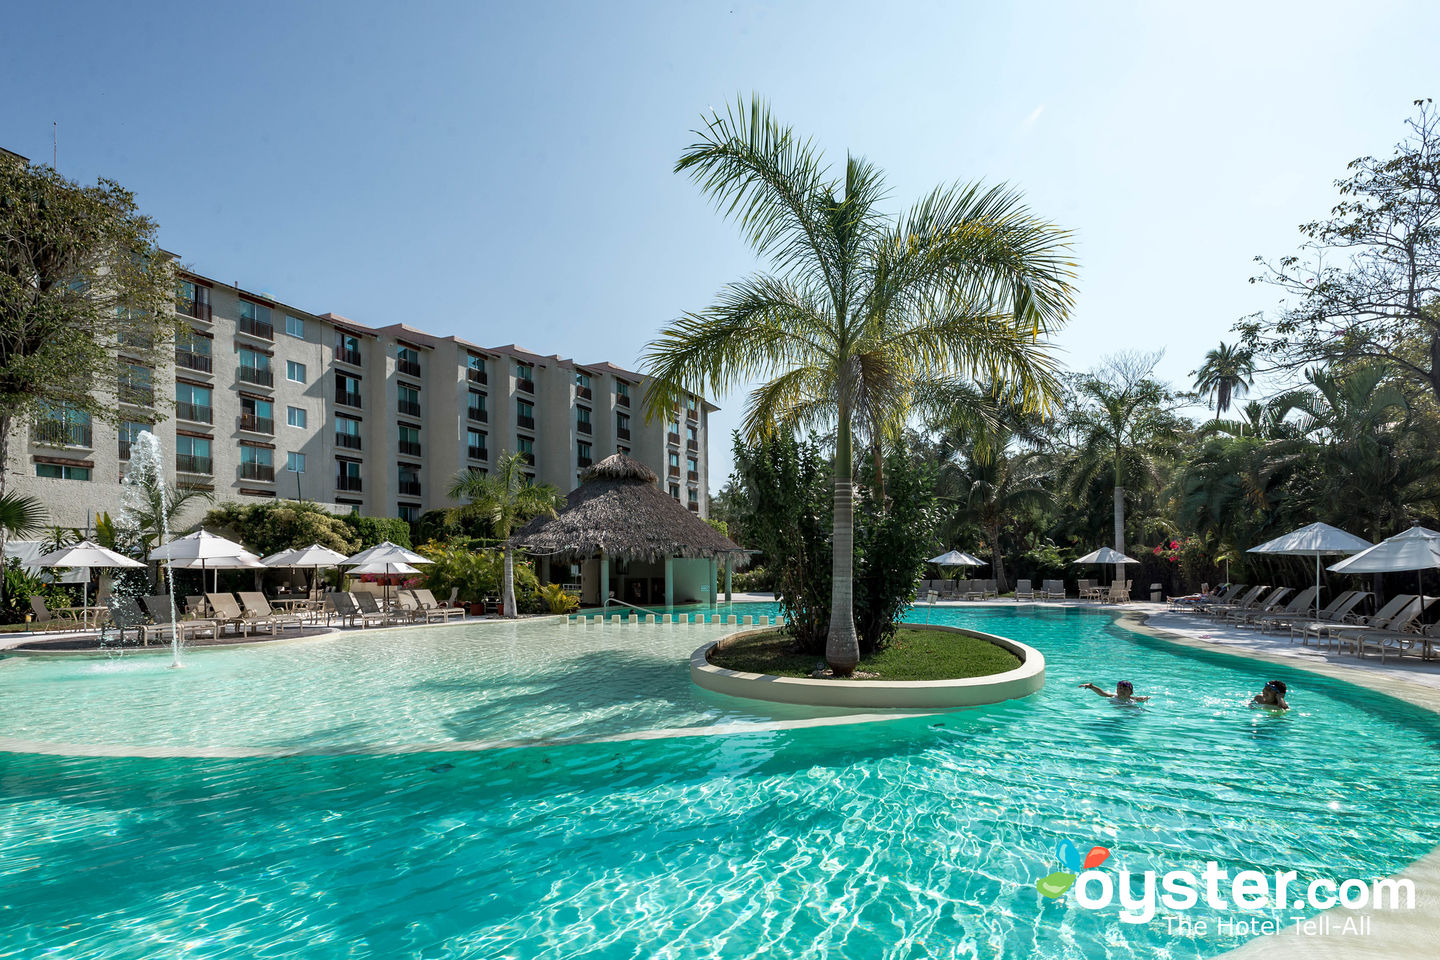 Gamma Plaza Ixtapa Review: What To REALLY Expect If You Stay